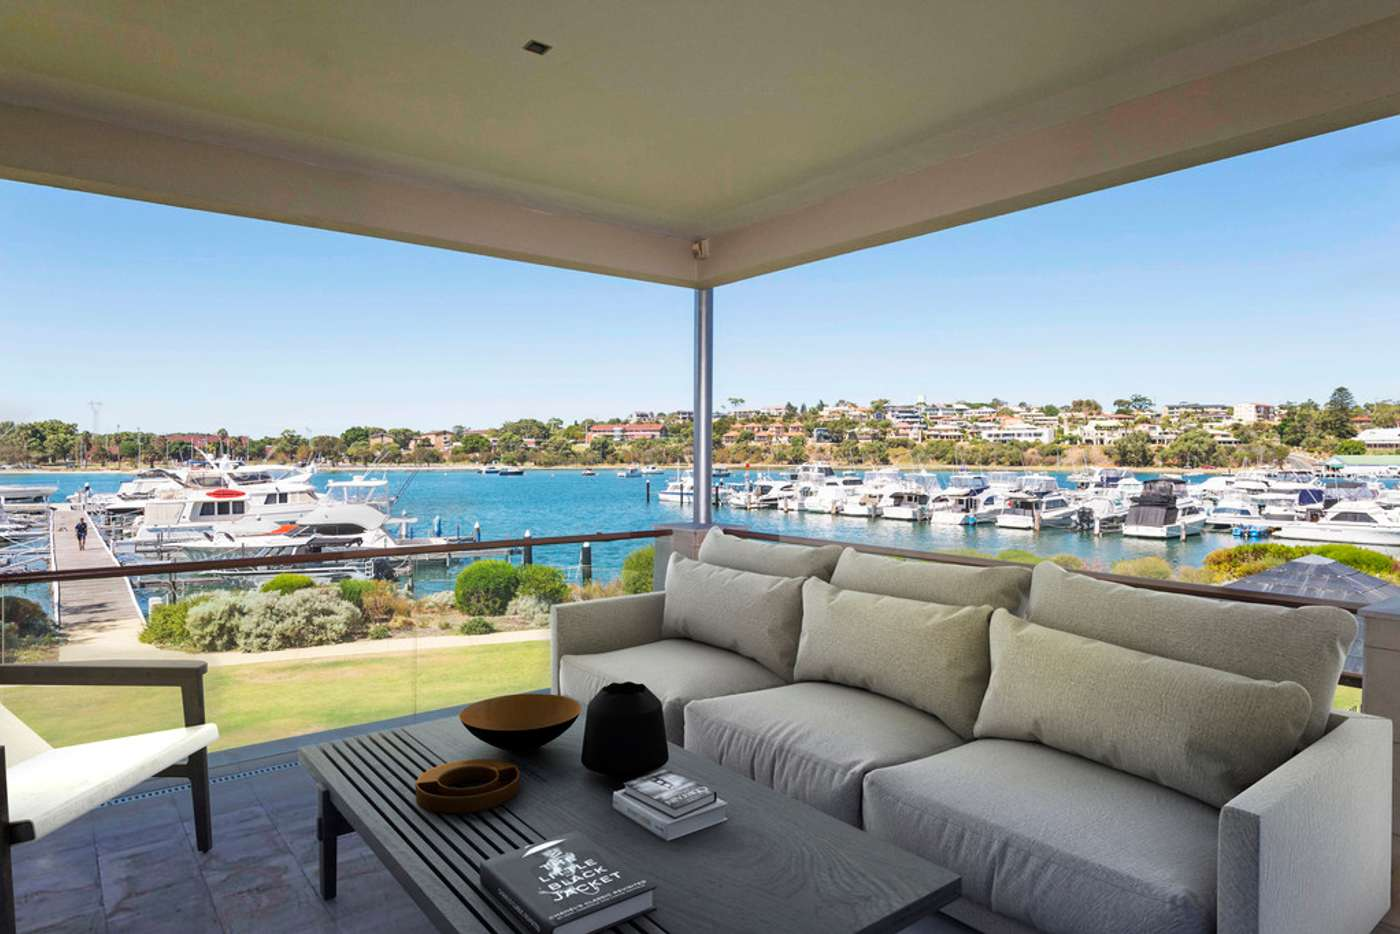 Main view of Homely apartment listing, 6/1 Corkhill Street, North Fremantle WA 6159